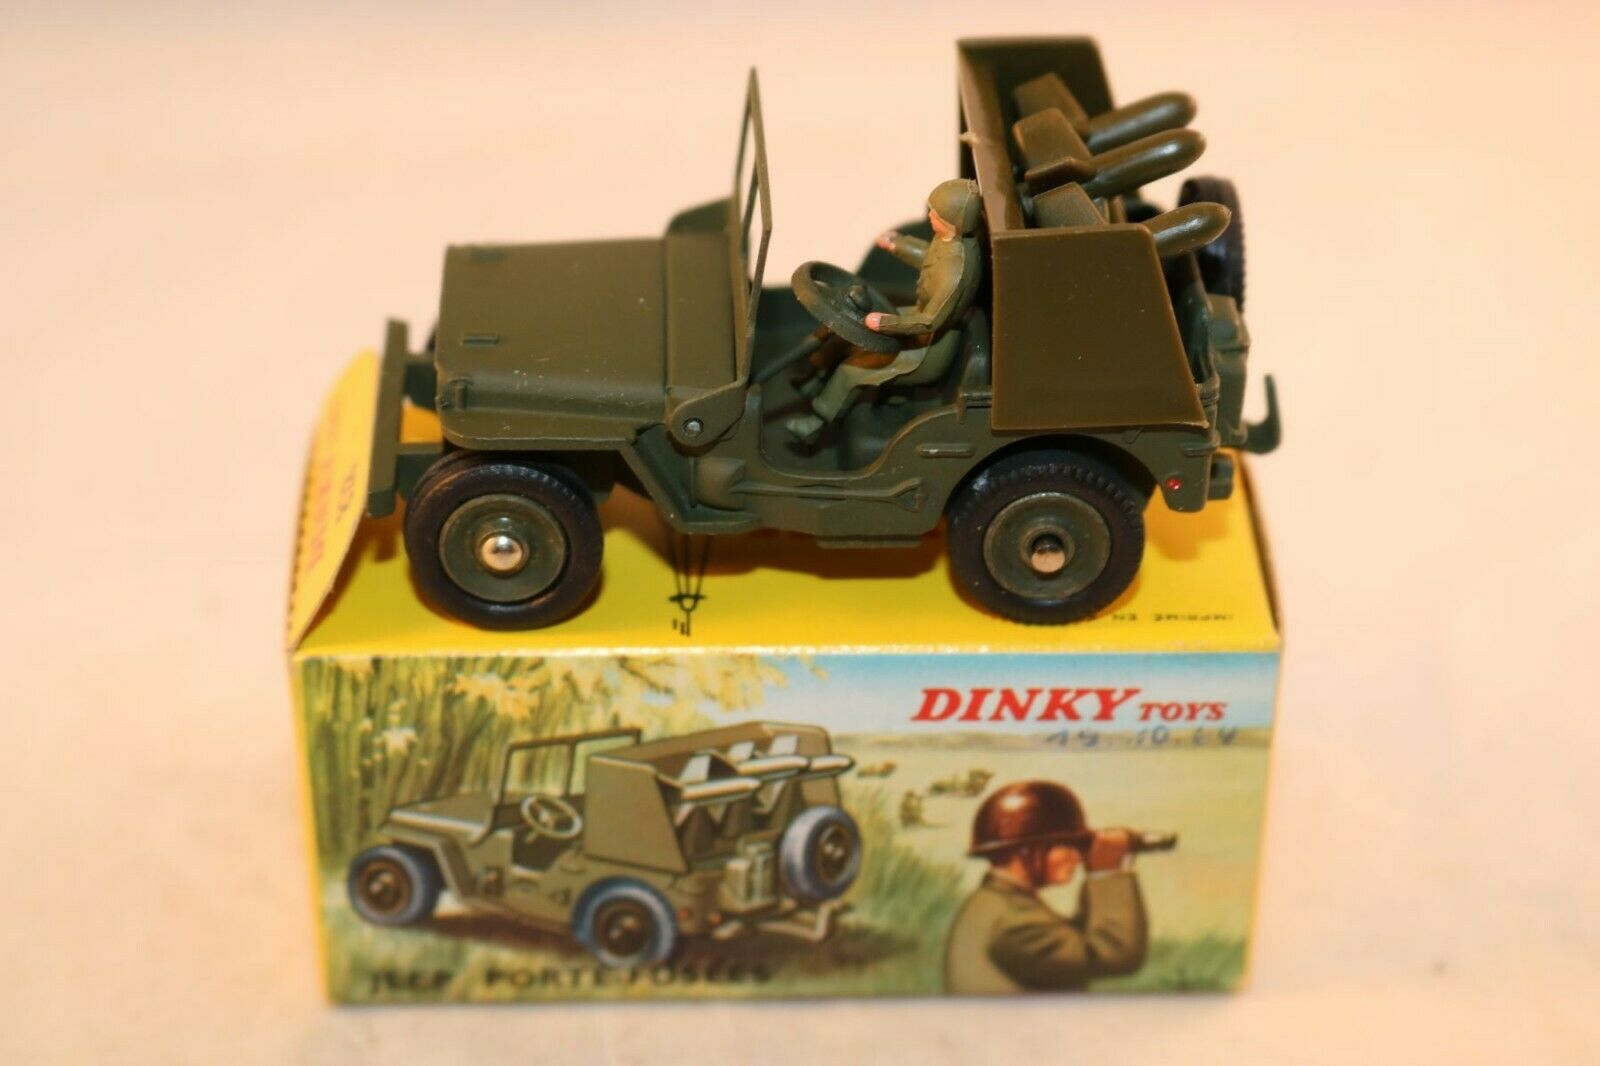 Dinky Toys 828 Jeep Porte Fusees SS 10 mint in box all original condition